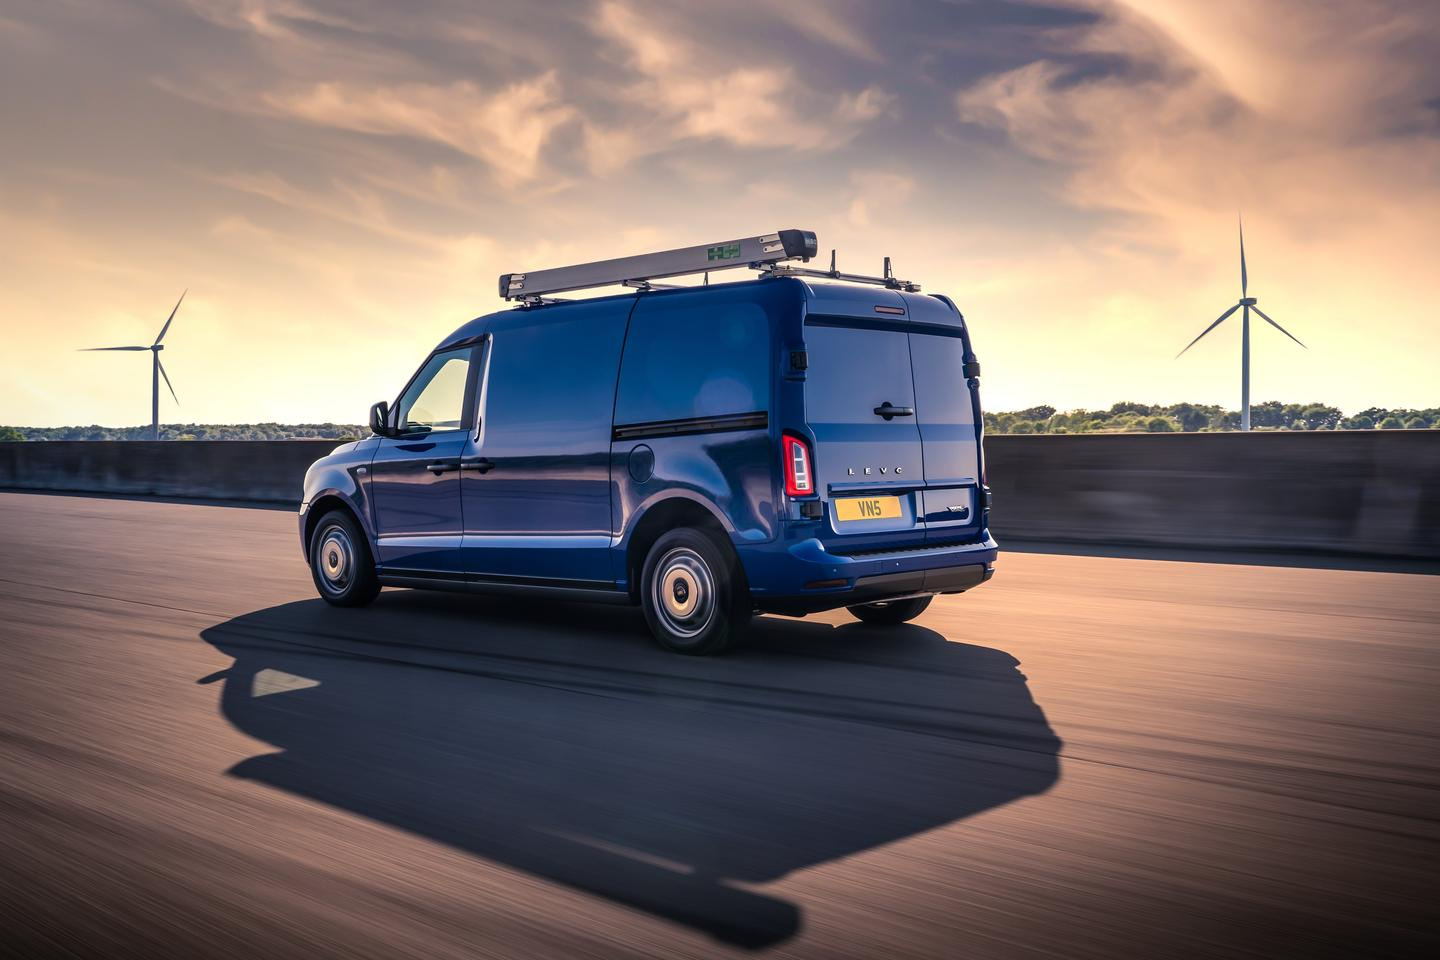 Launched today, the VN5 is powered by the same range-extender drivetrain found in the TX taxi